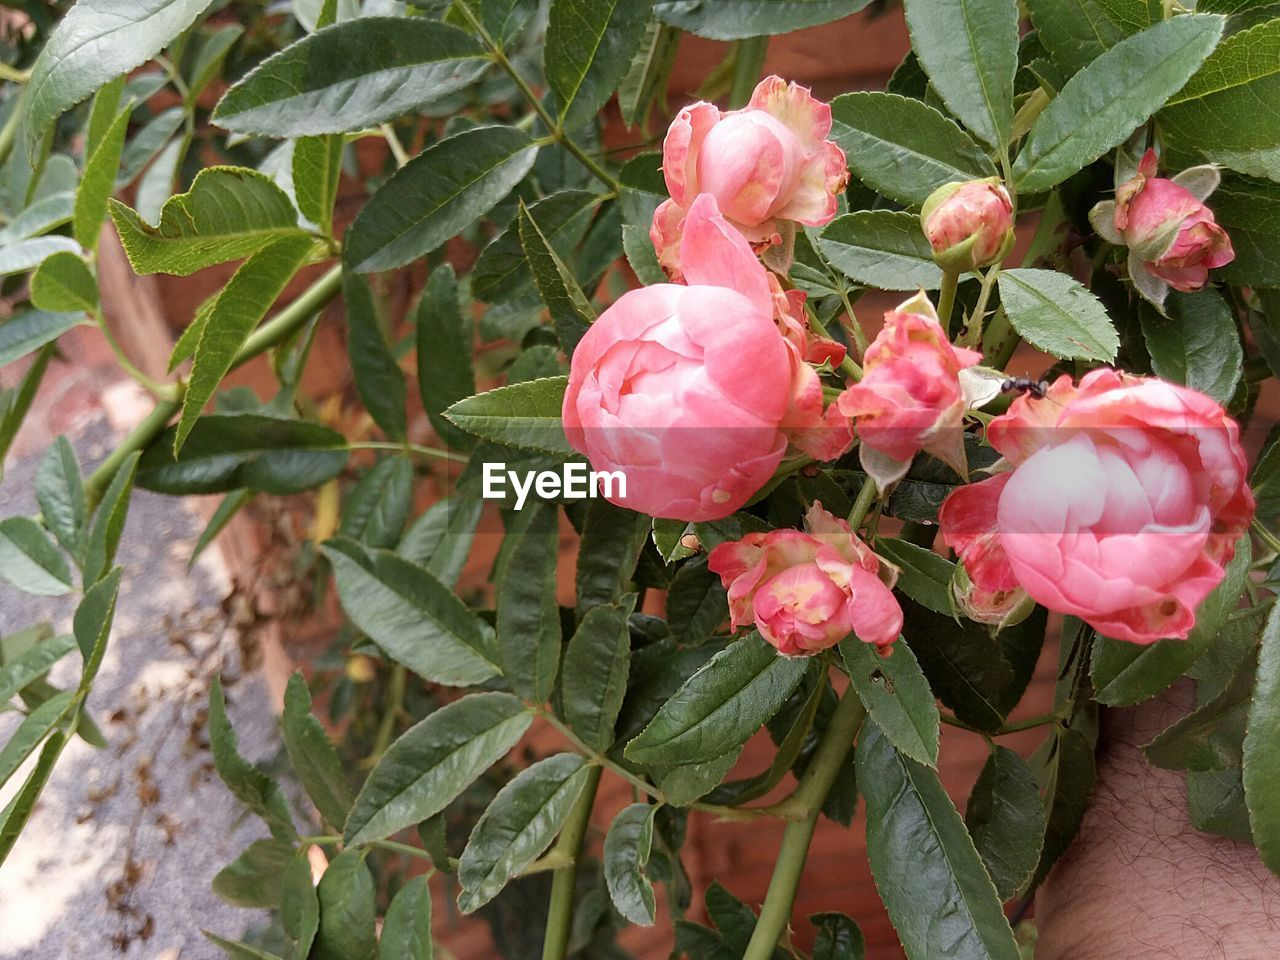 growth, flower, leaf, plant, nature, beauty in nature, pink color, petal, no people, freshness, outdoors, green color, fragility, day, blooming, flower head, close-up